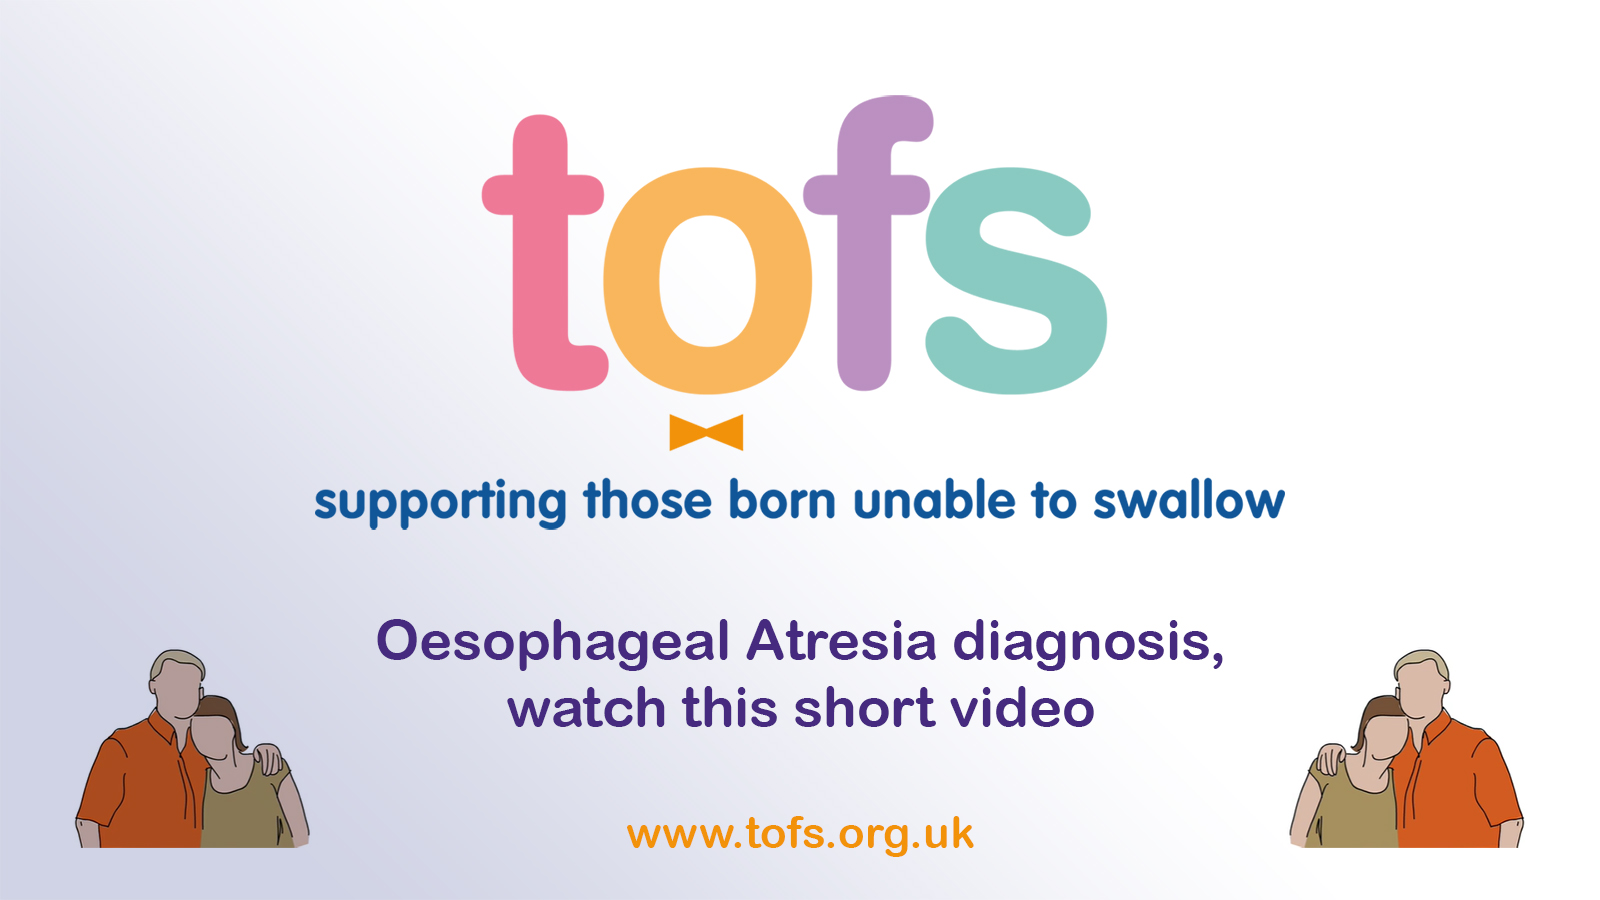 TOFS - Supporting those born unable to swallow - Oesophageal Atresia diagnosis, watch this short video - www.tofs.org.uk